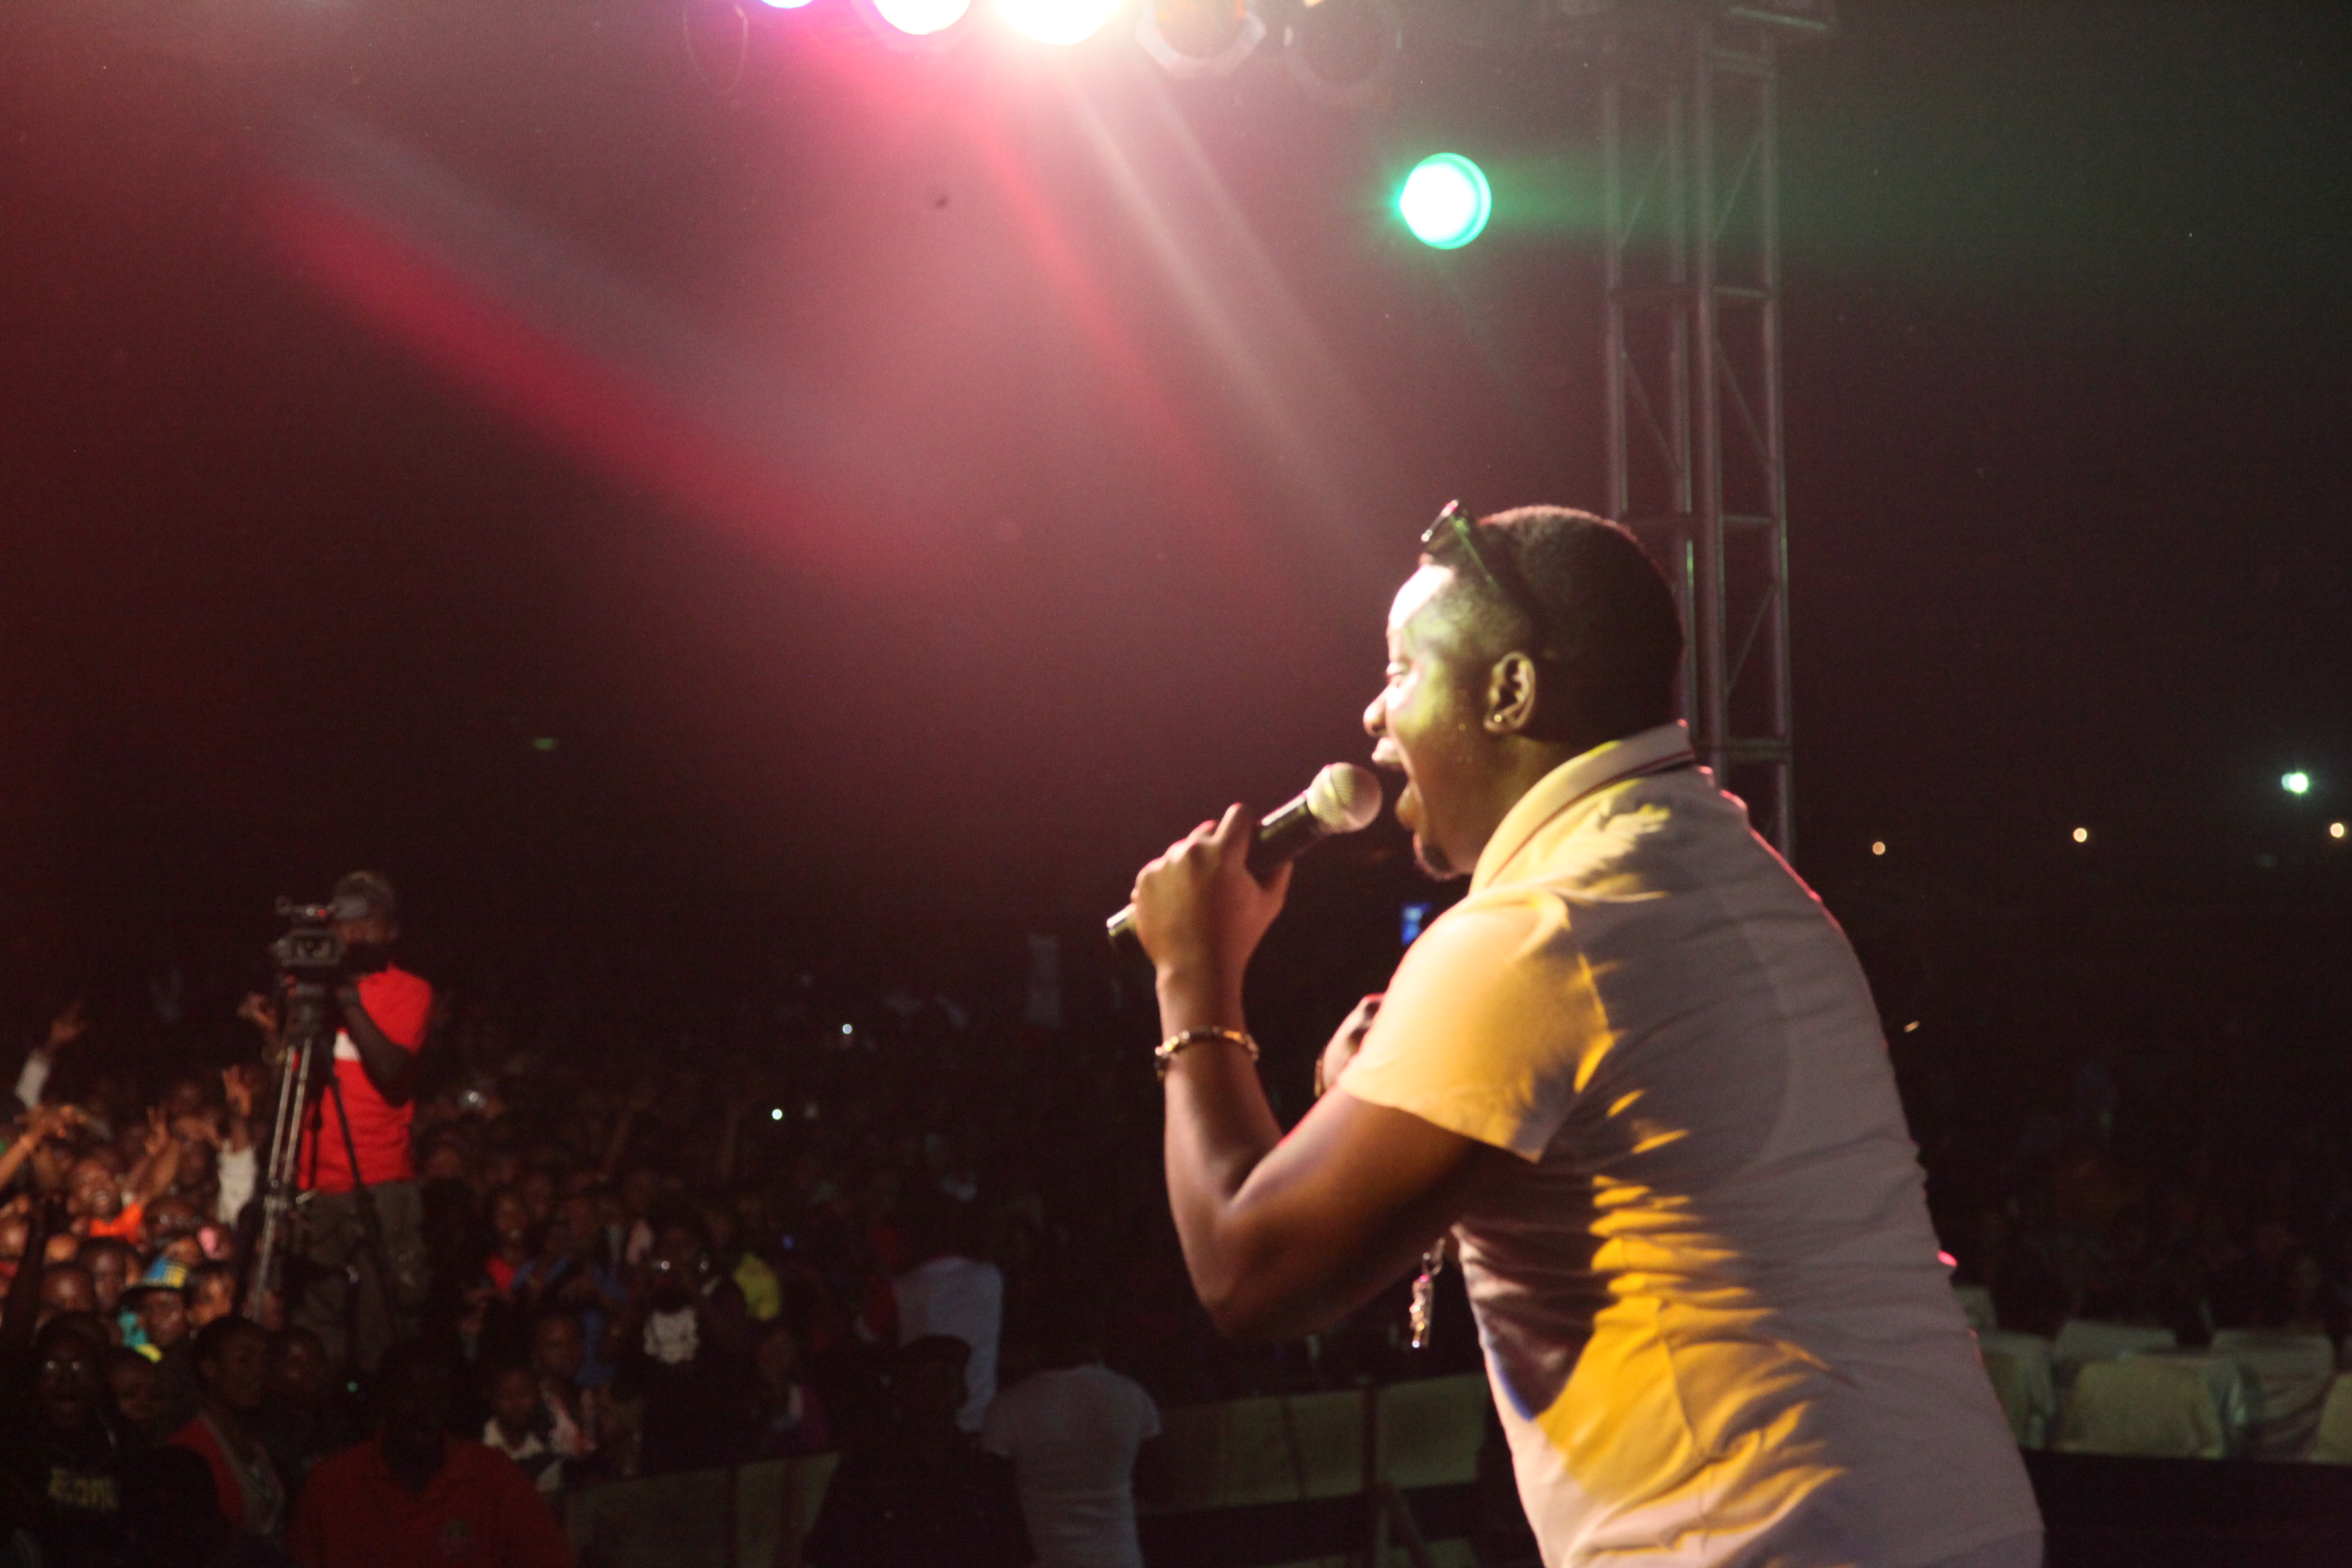 Mavin records artiste, Wande Coal thrilling fans on stage